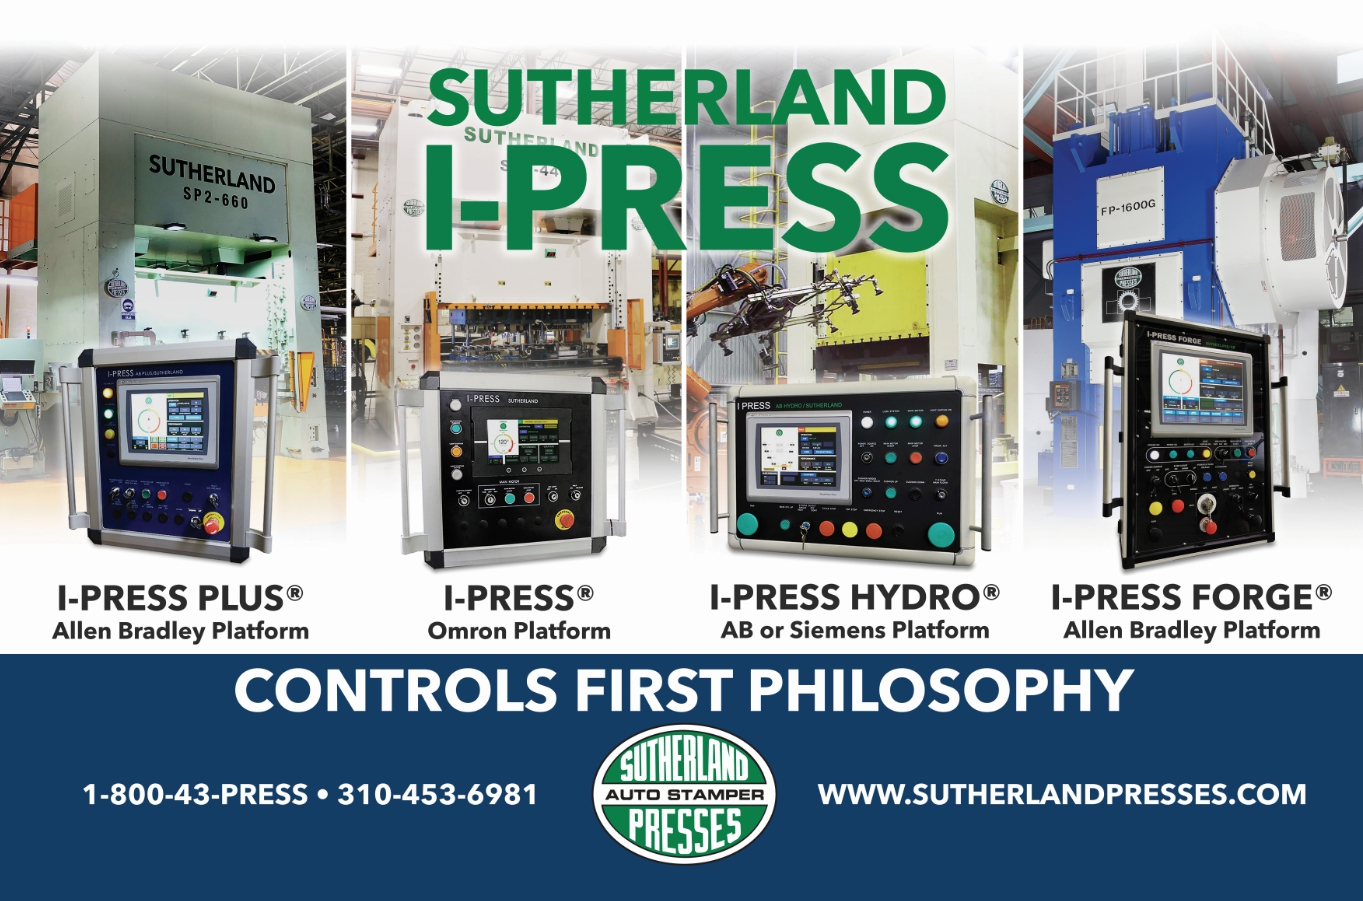 HD1-330 Servo Hydraulic Press at FABTECH available for pre-show purchase